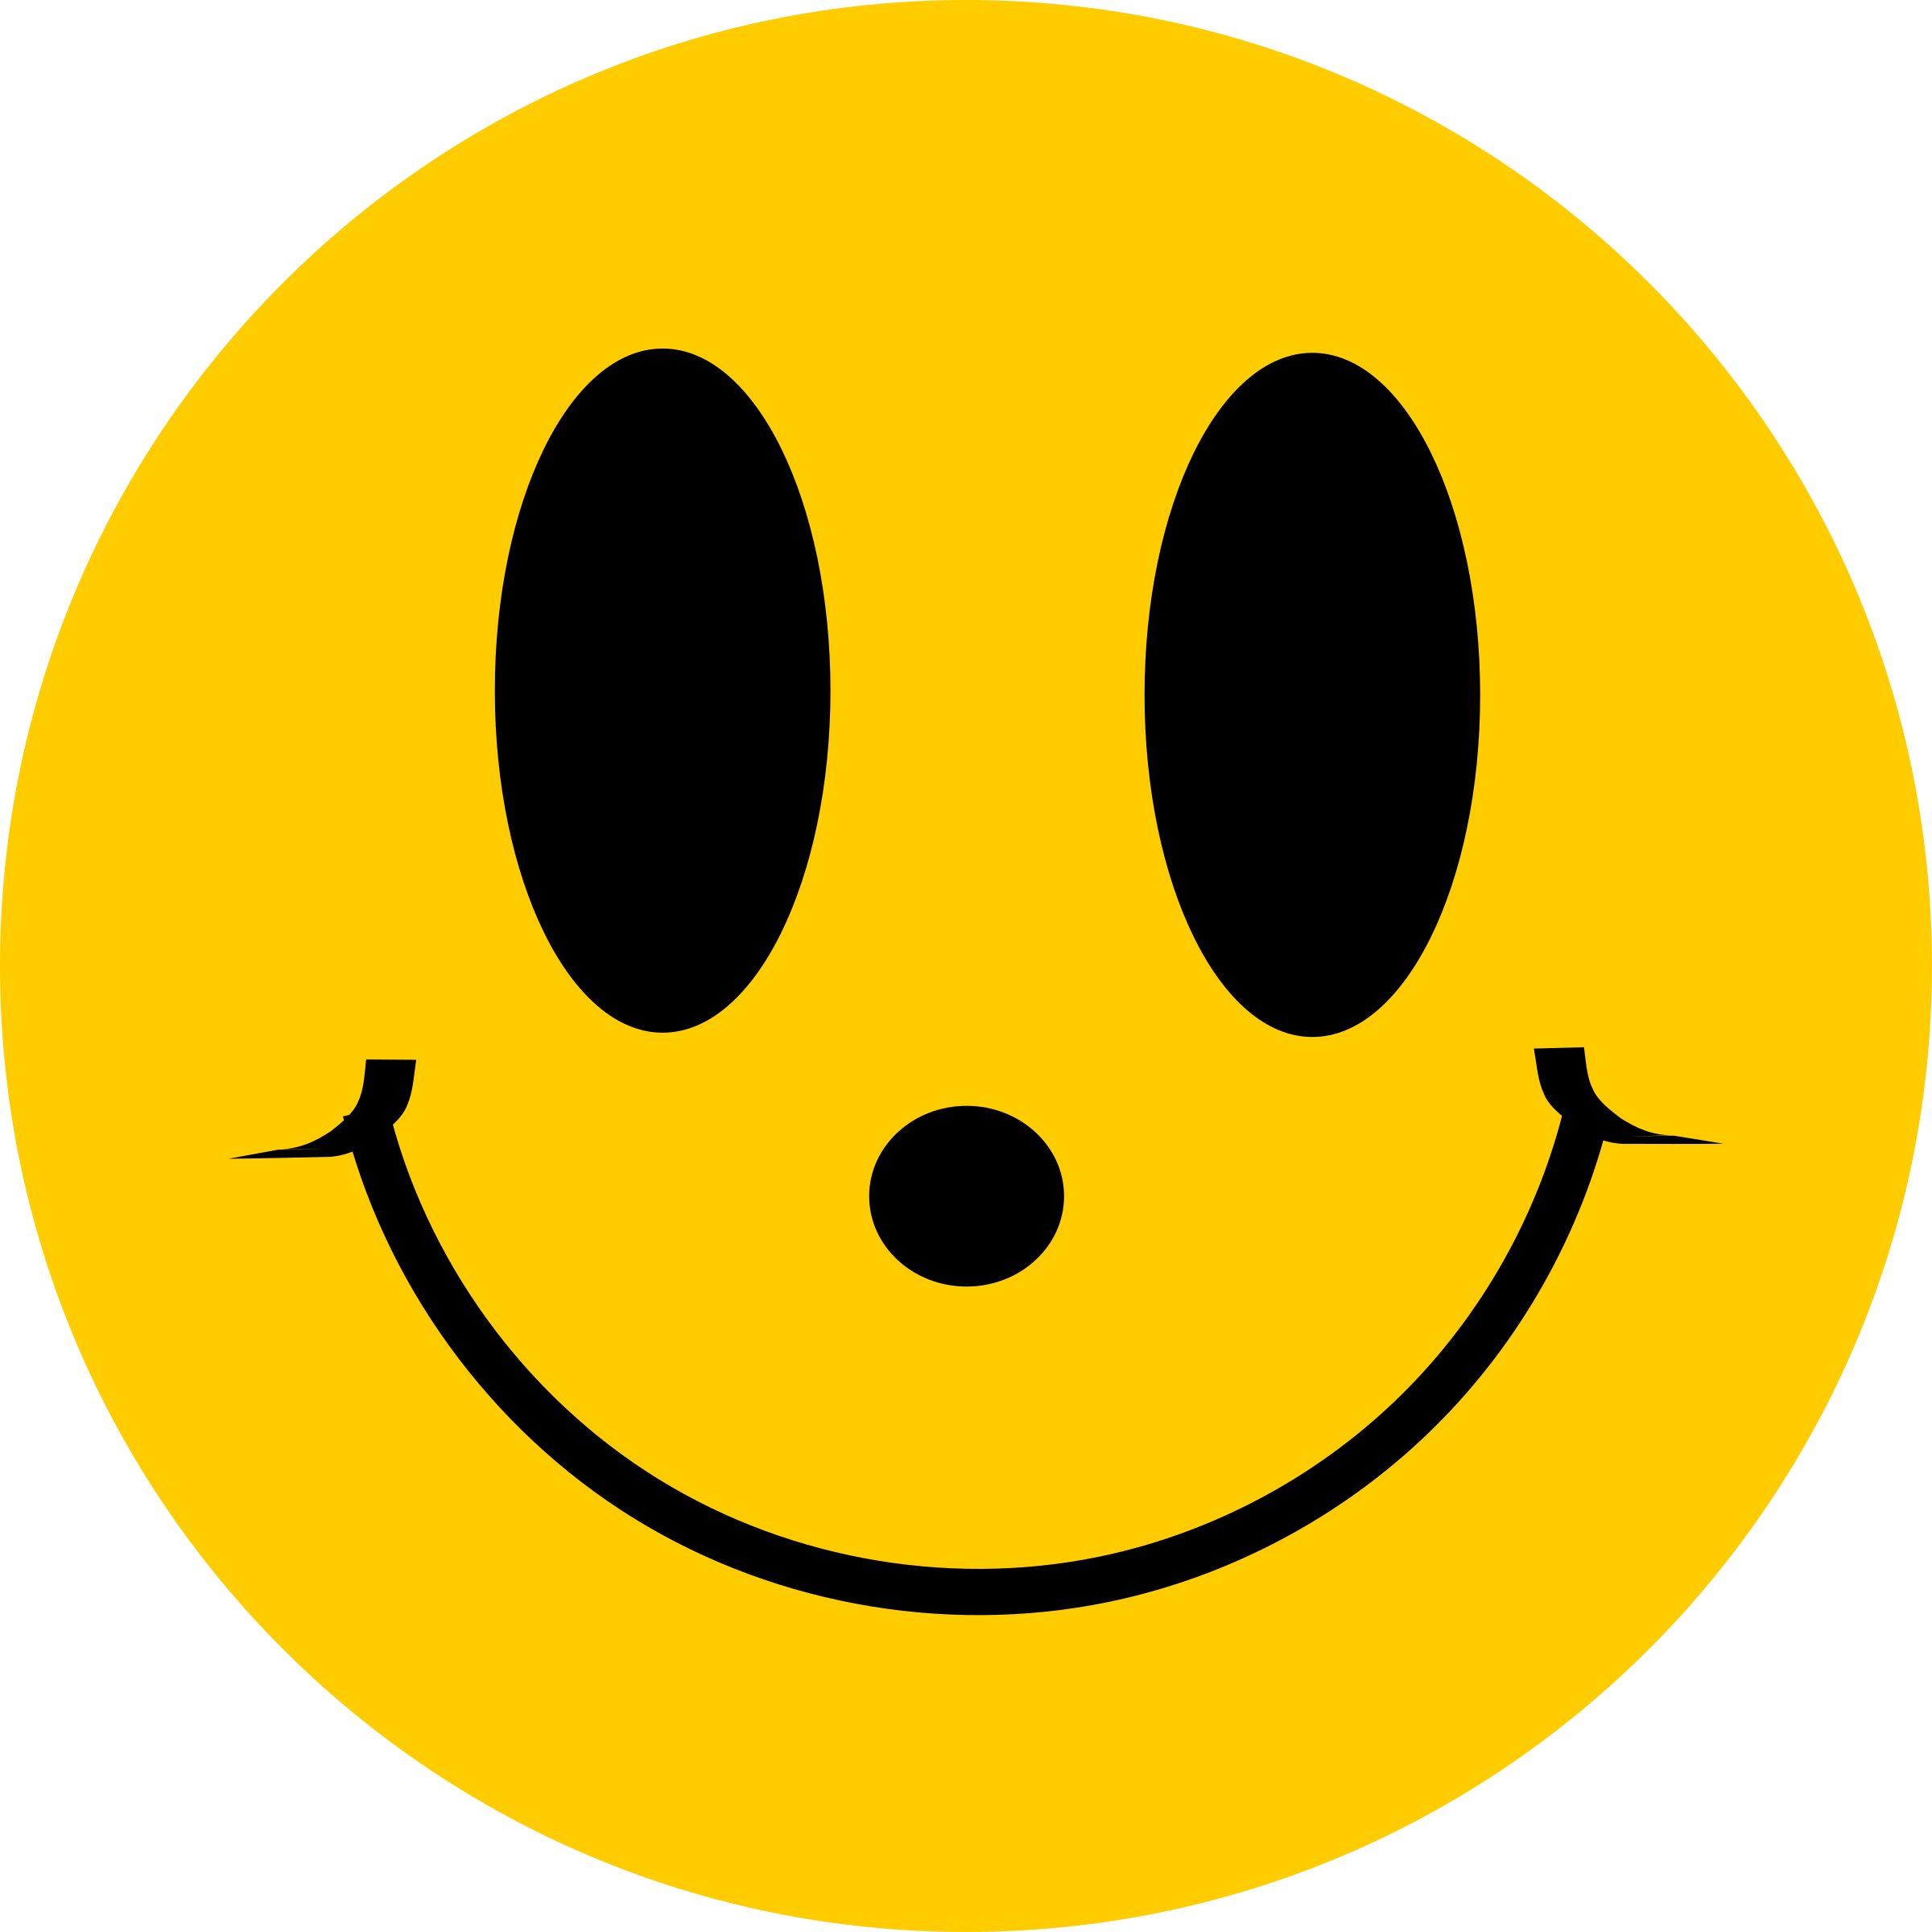 Clipart smiley face with thumbs up picture transparent stock Clipart - Simple Flat Smiley Face Smile picture transparent stock